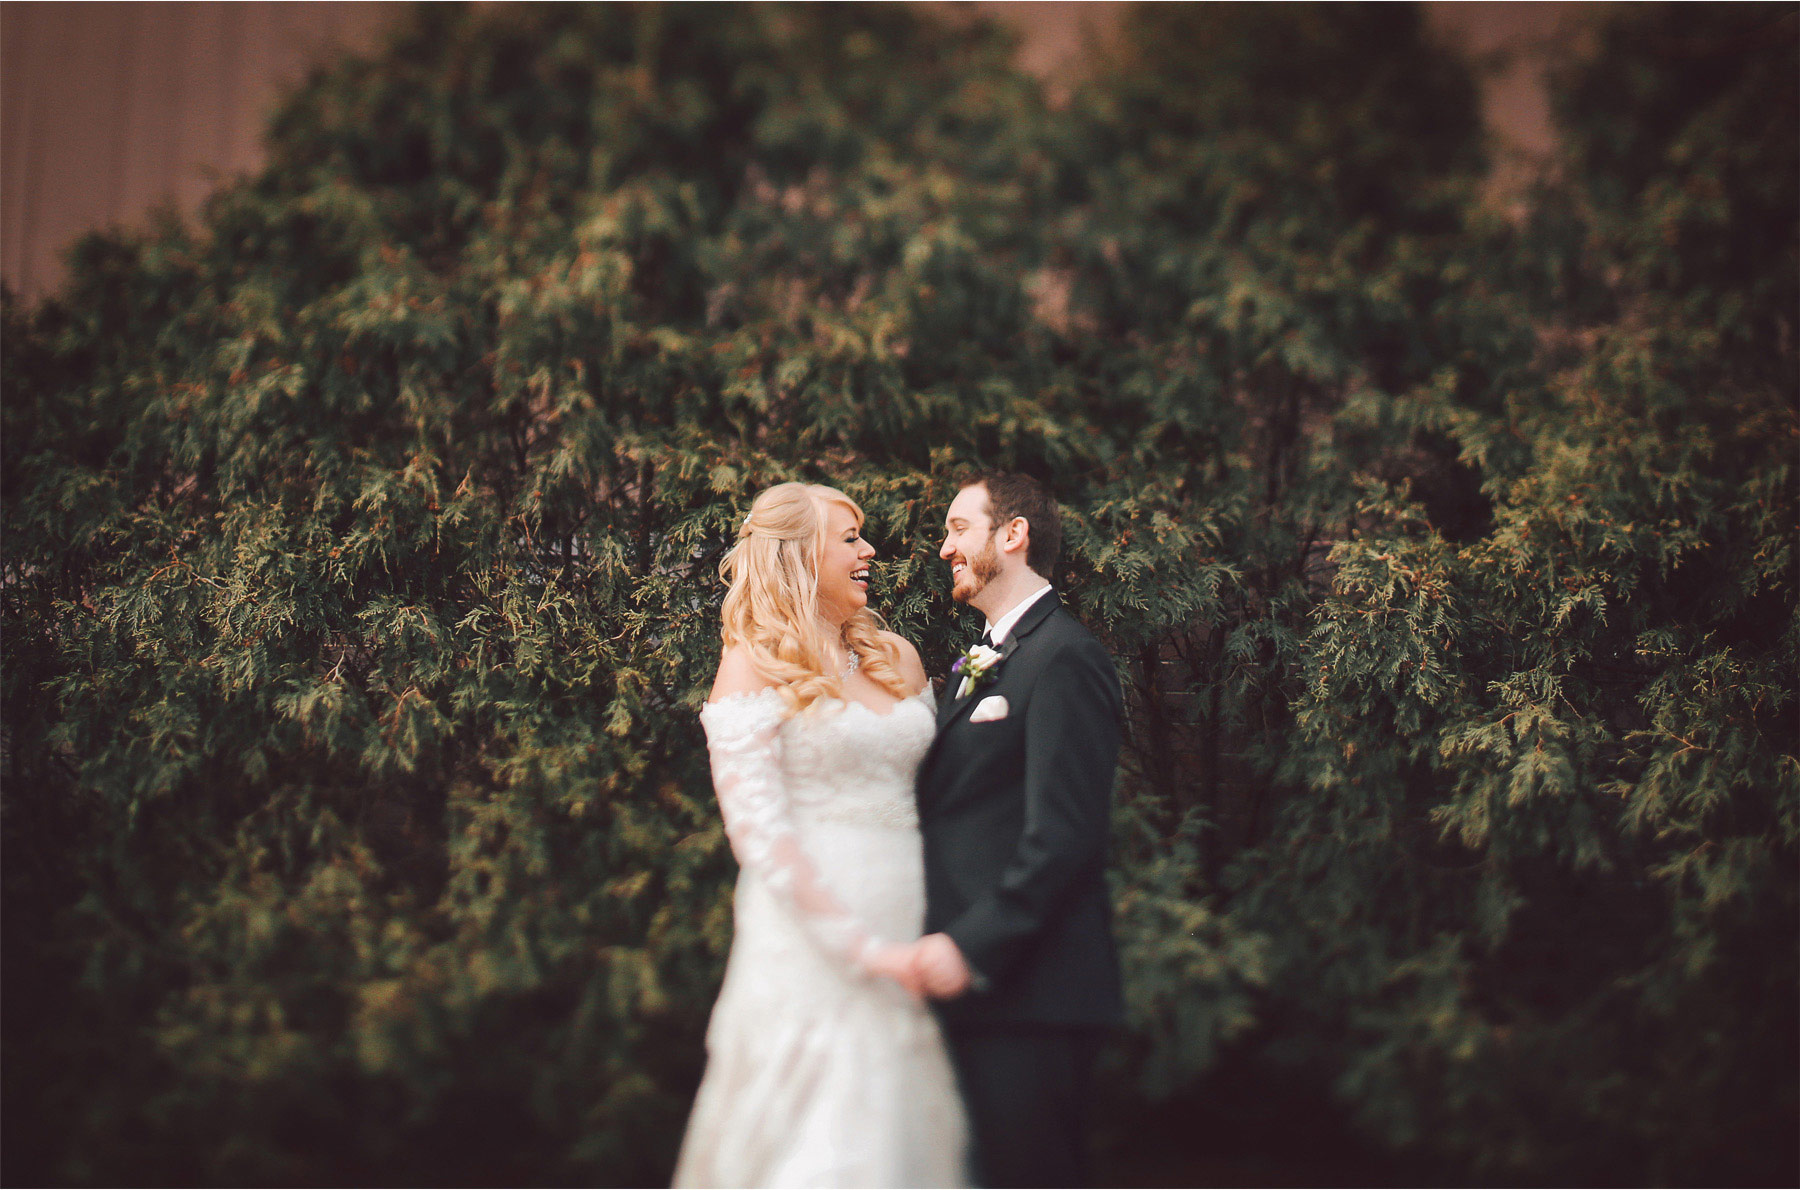 07-Minneapolis-Minnesota-Wedding-Photographer-by-Andrew-Vick-Photography-Winter-Millennium-Hotel-First-Meeting-Look-Bride-Groom-Laughter-Vintage-Jennifer-and-Phillip.jpg